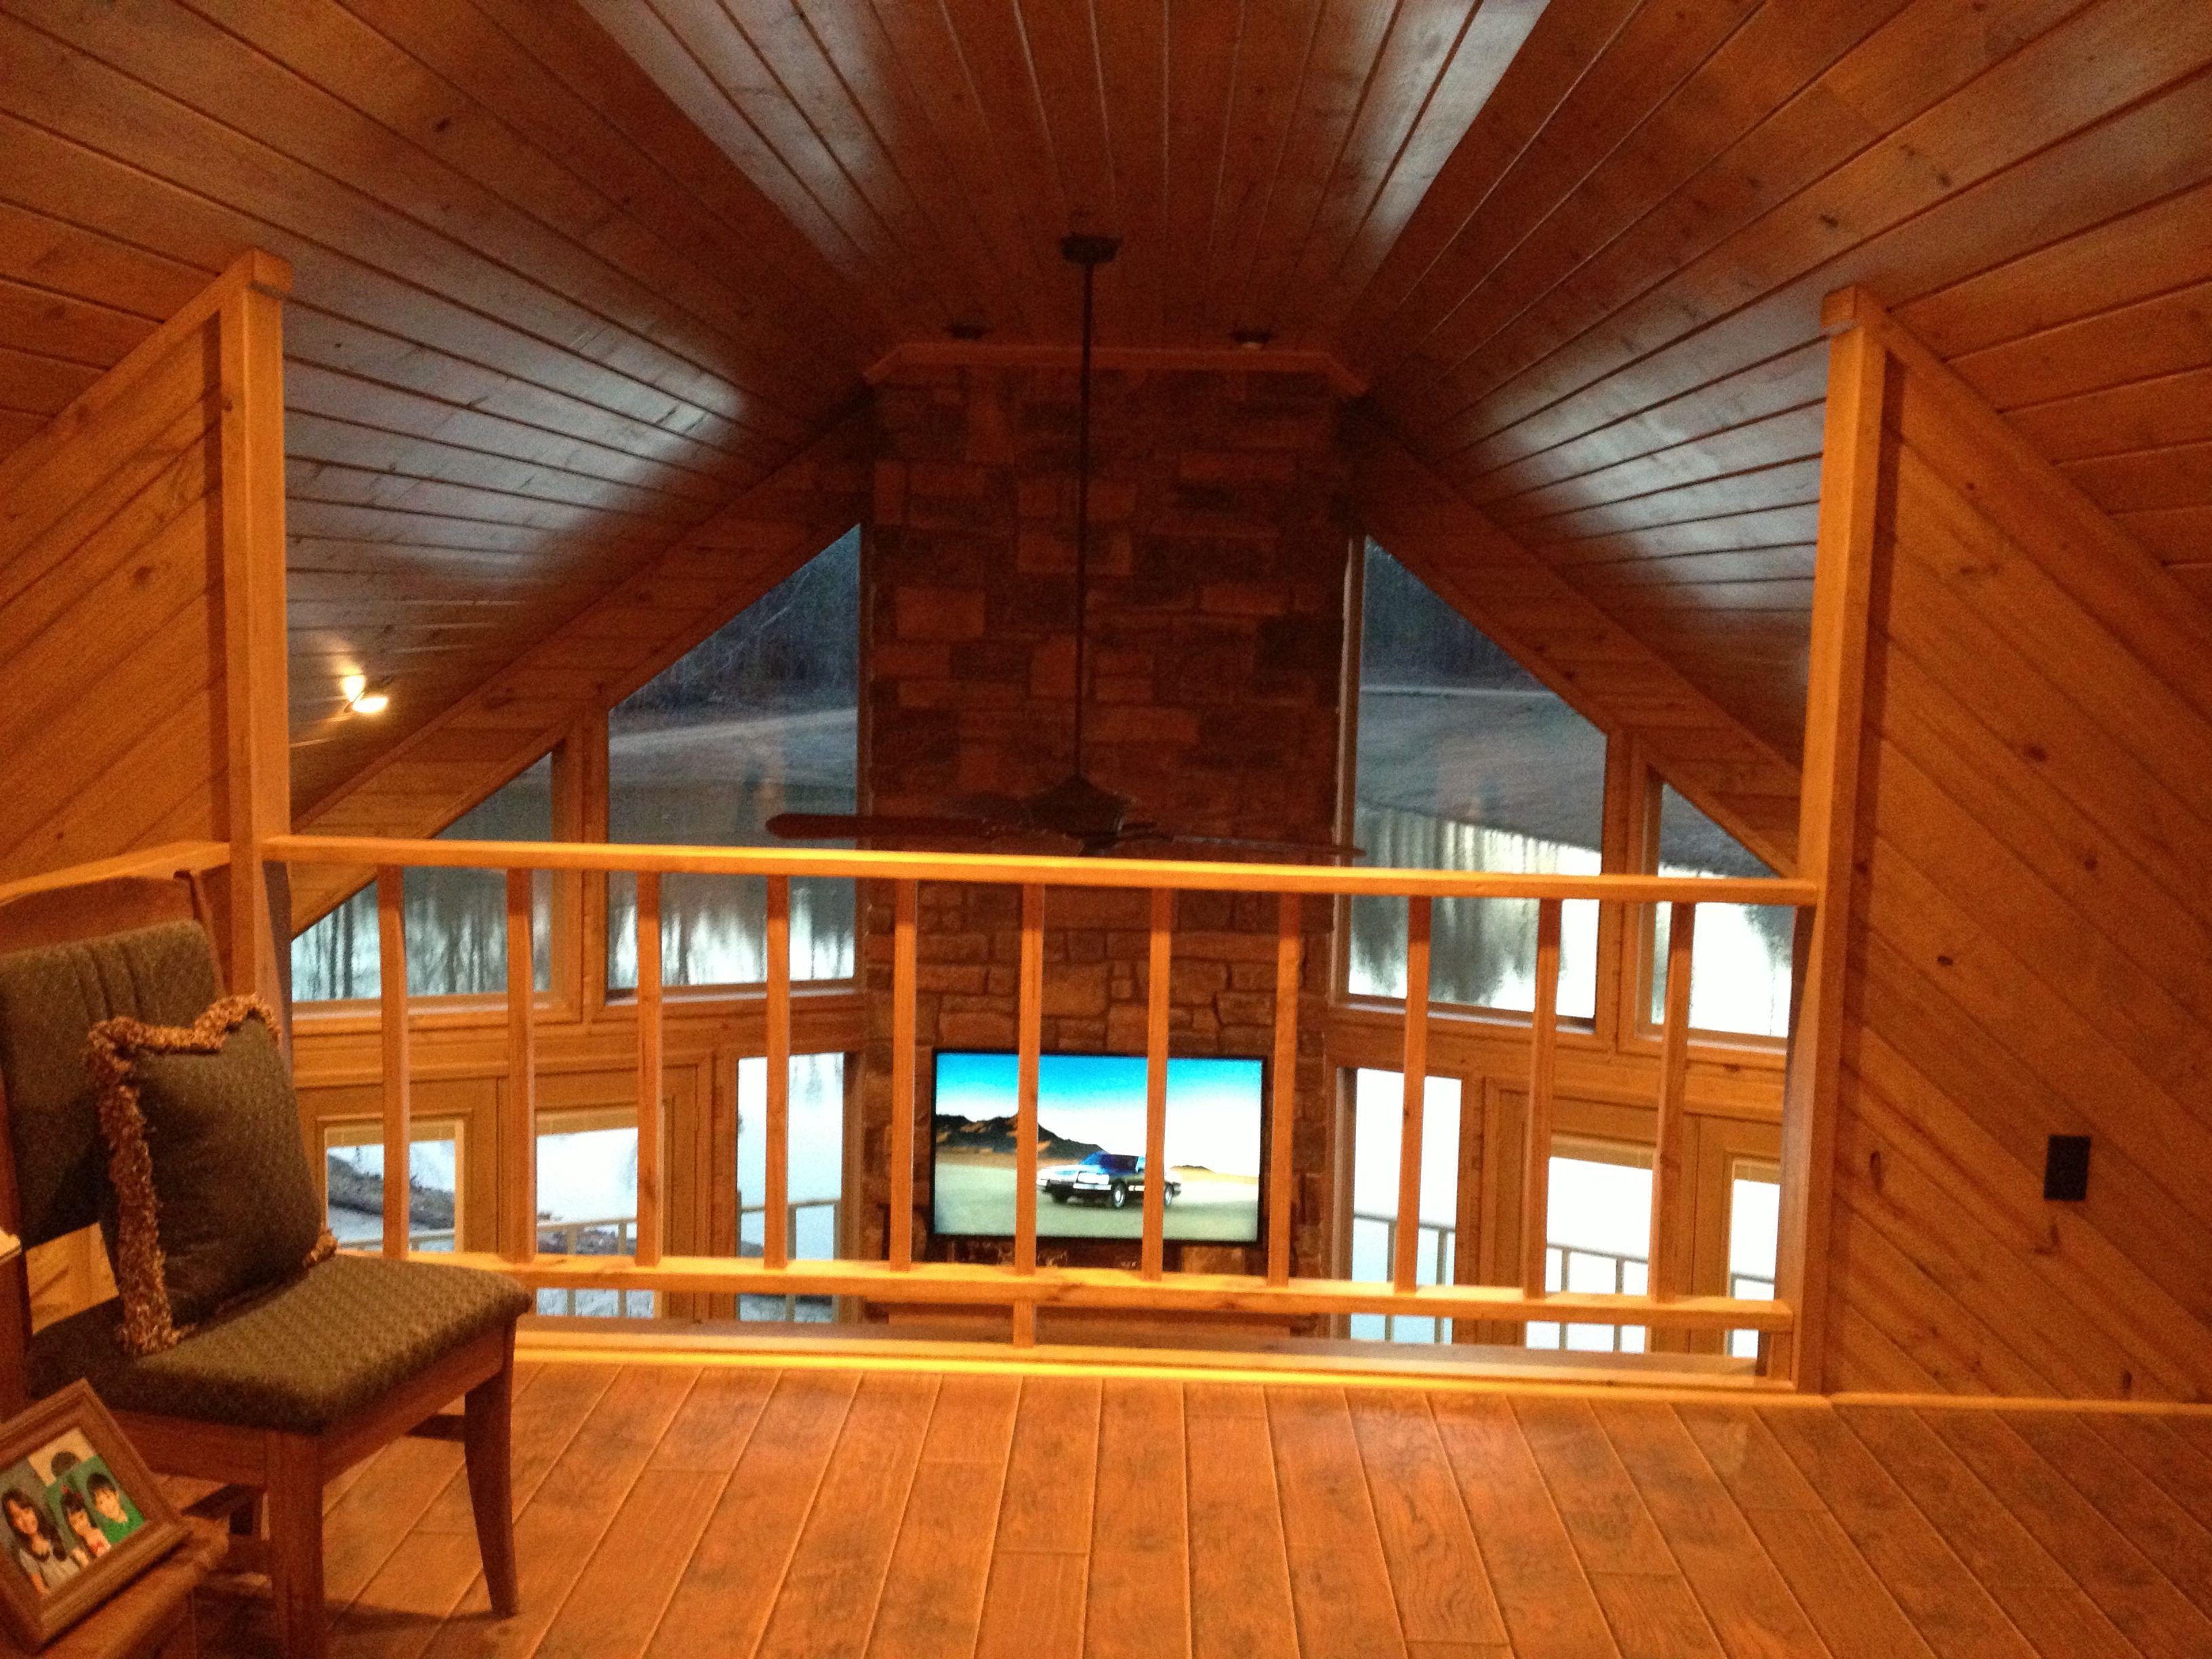 Loft Area Tongue And Groove Pine Walls And Ceiling Porch Flooring Wood Floors Wooden Porch